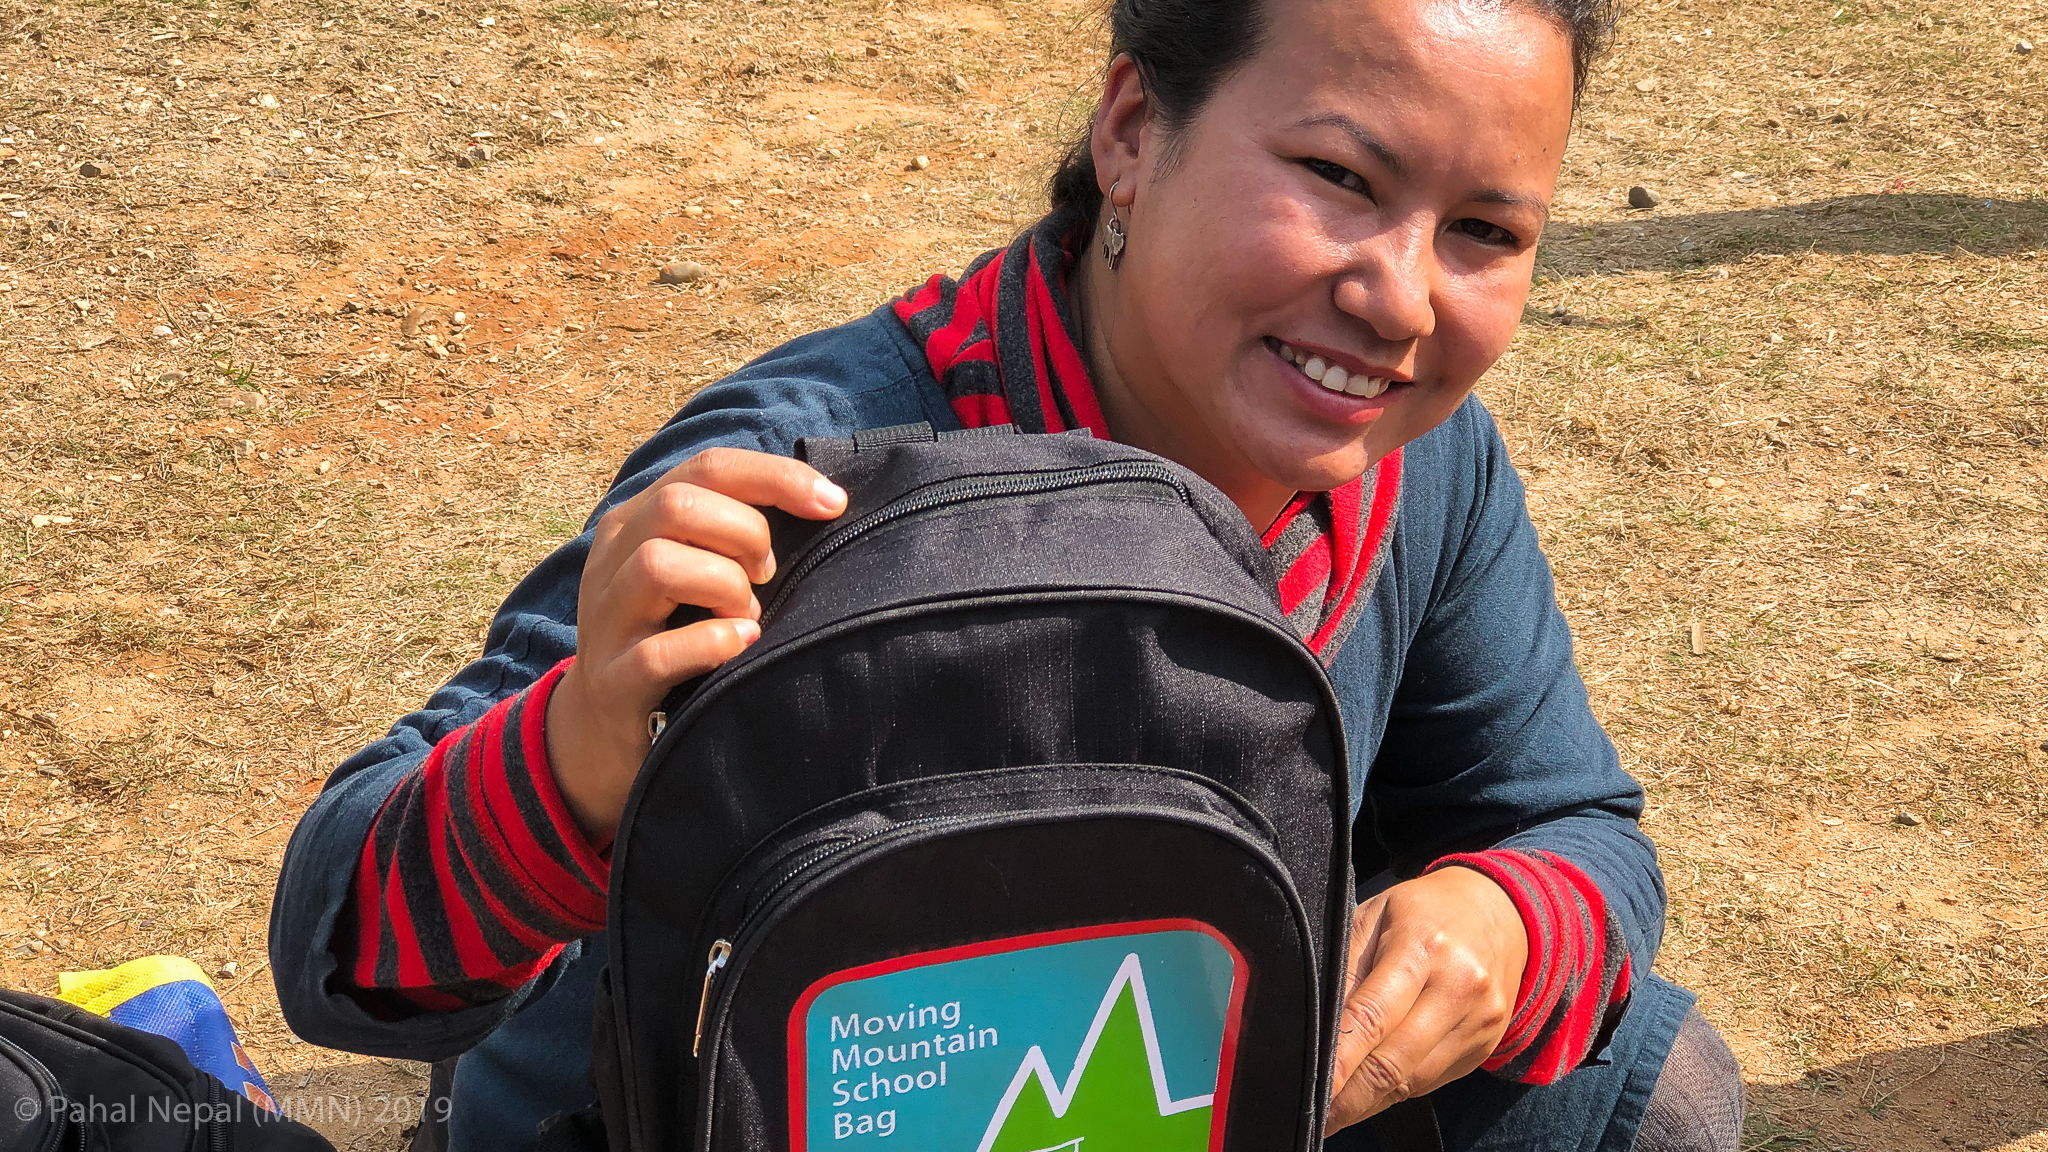 Rewati Gurung - founder of Moving Mountain Nepal shows the latest school bag. Since the early days the bag has been developed by our bag maker in Kathmandu to be robust and waterproof capable of lasting the student for many years.